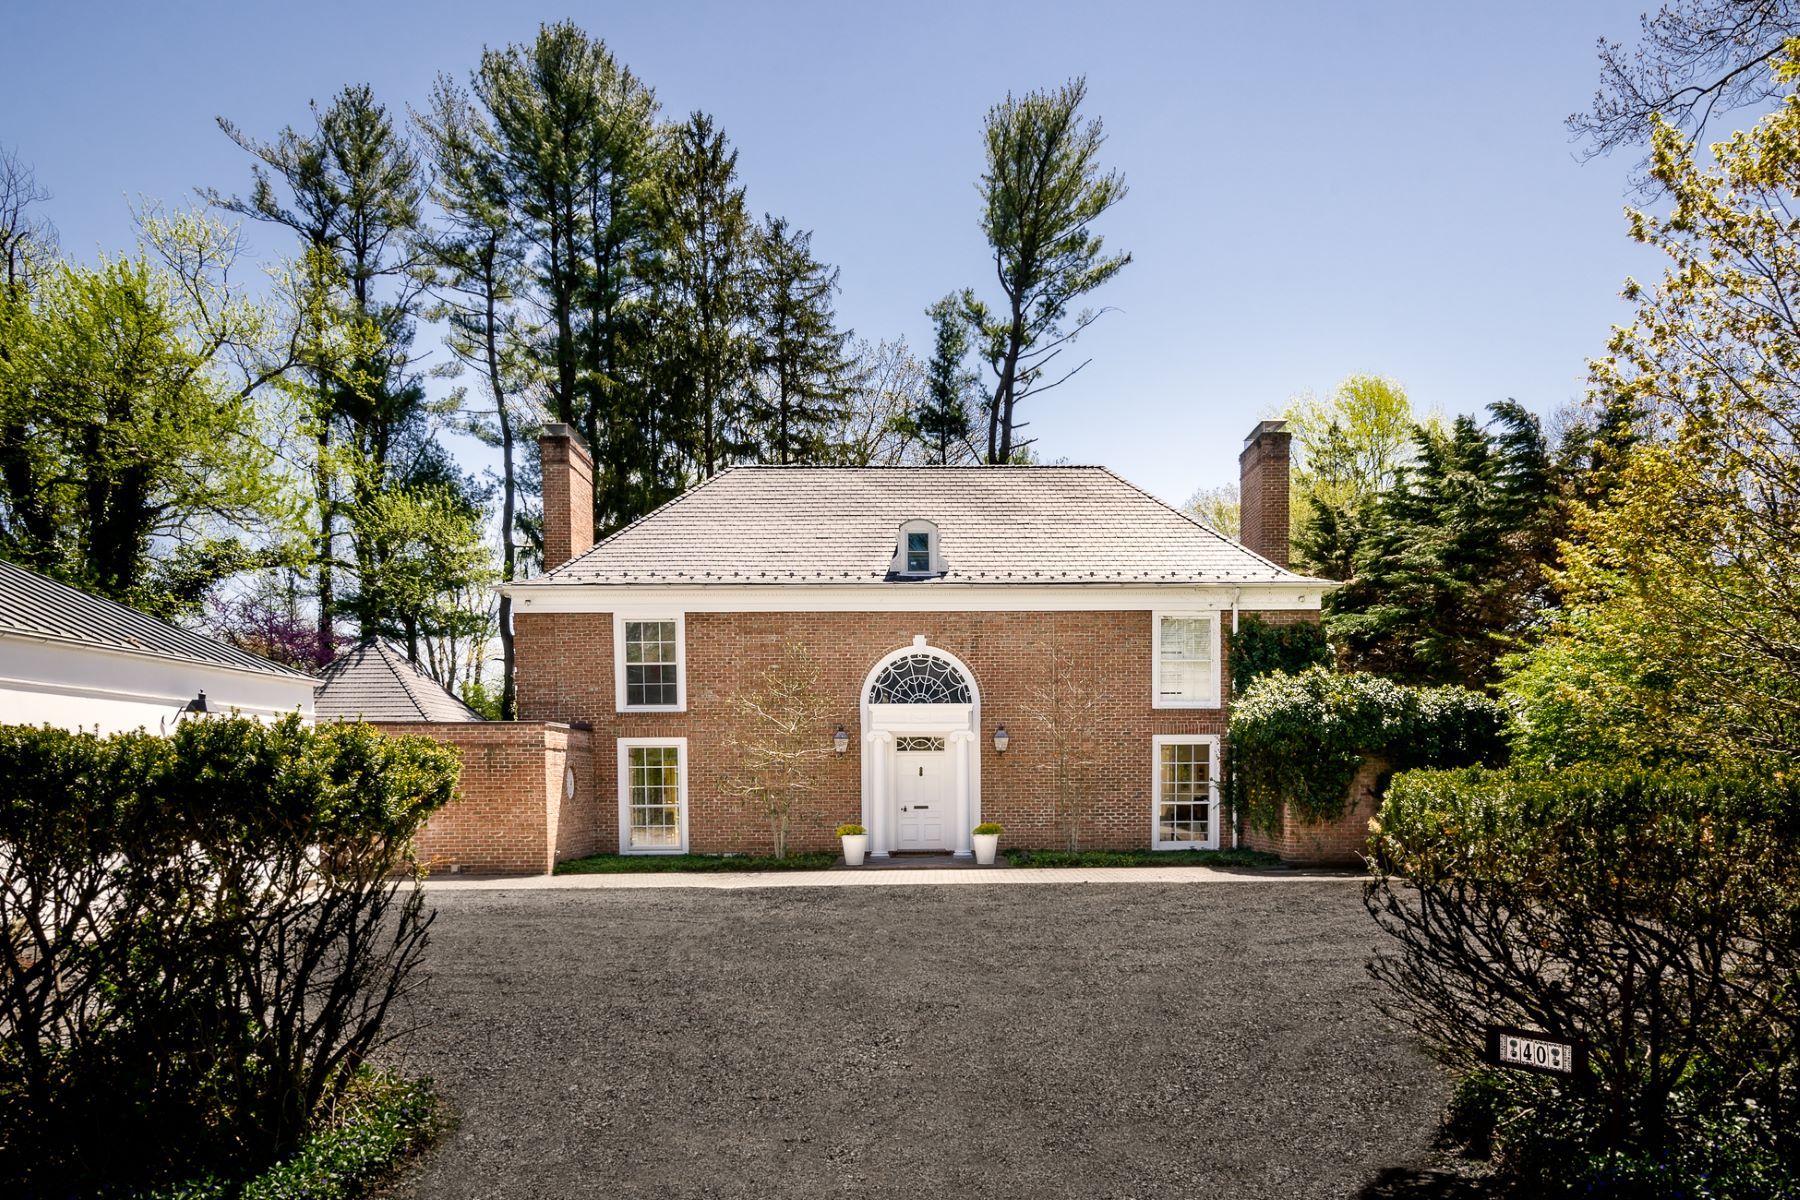 single family homes for Sale at A Gracious Presence In The Coveted Institute Area 40 Haslet Avenue, Princeton, New Jersey 08540 United States